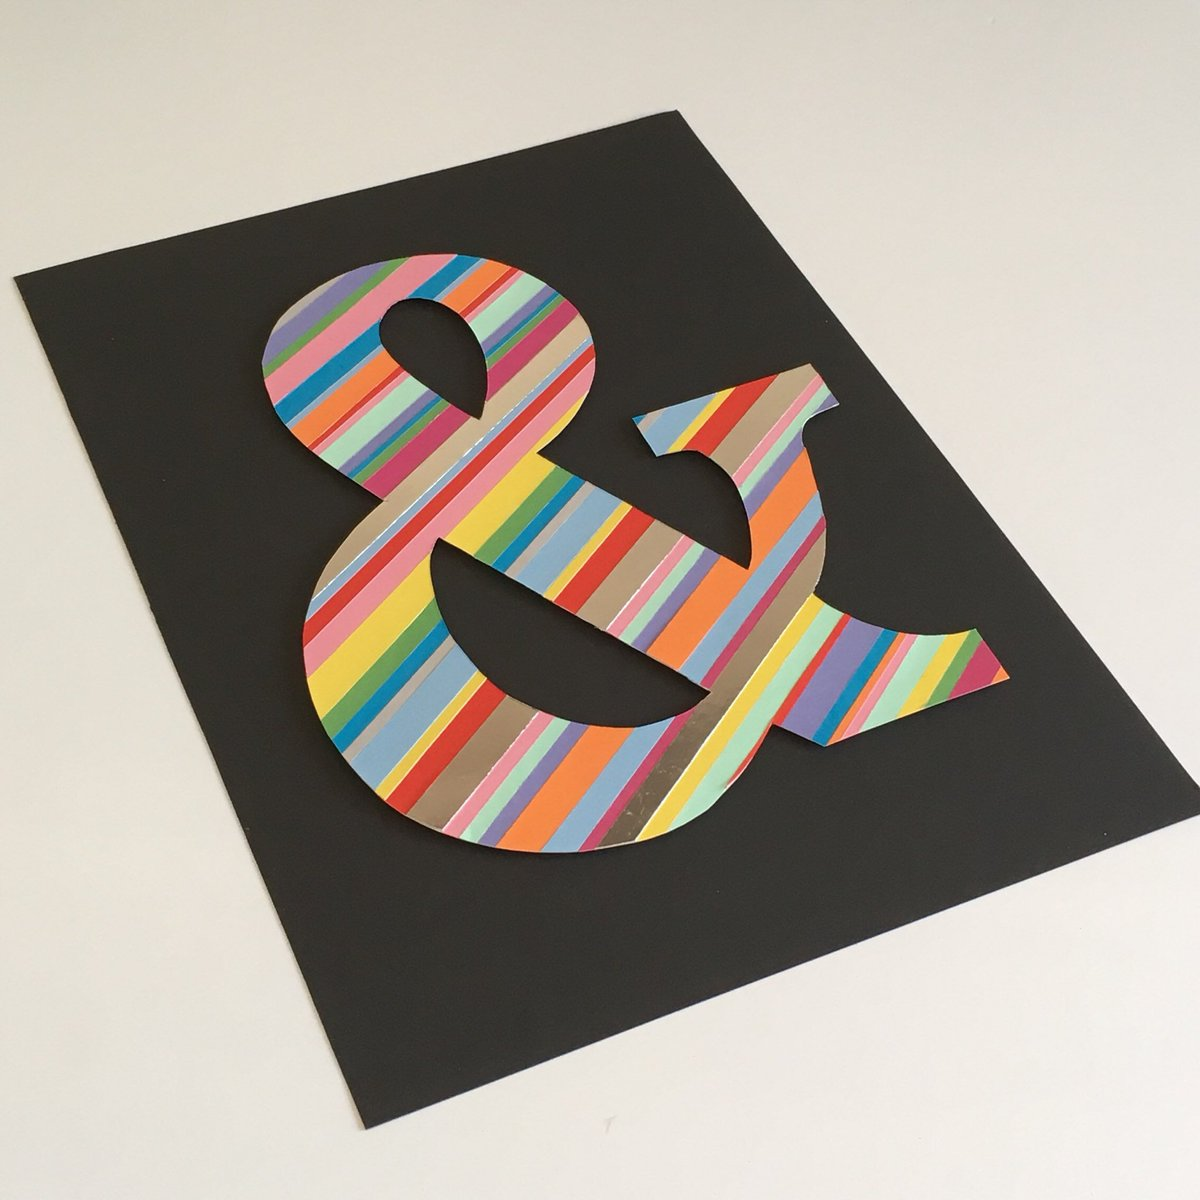 For anyone who love typography and rainbows, this giant ampersand is latest addition to my #etsy shop. #HandmadeHour  https:// etsy.me/2LgWTjH  &nbsp;  <br>http://pic.twitter.com/4VWKOvBS2I